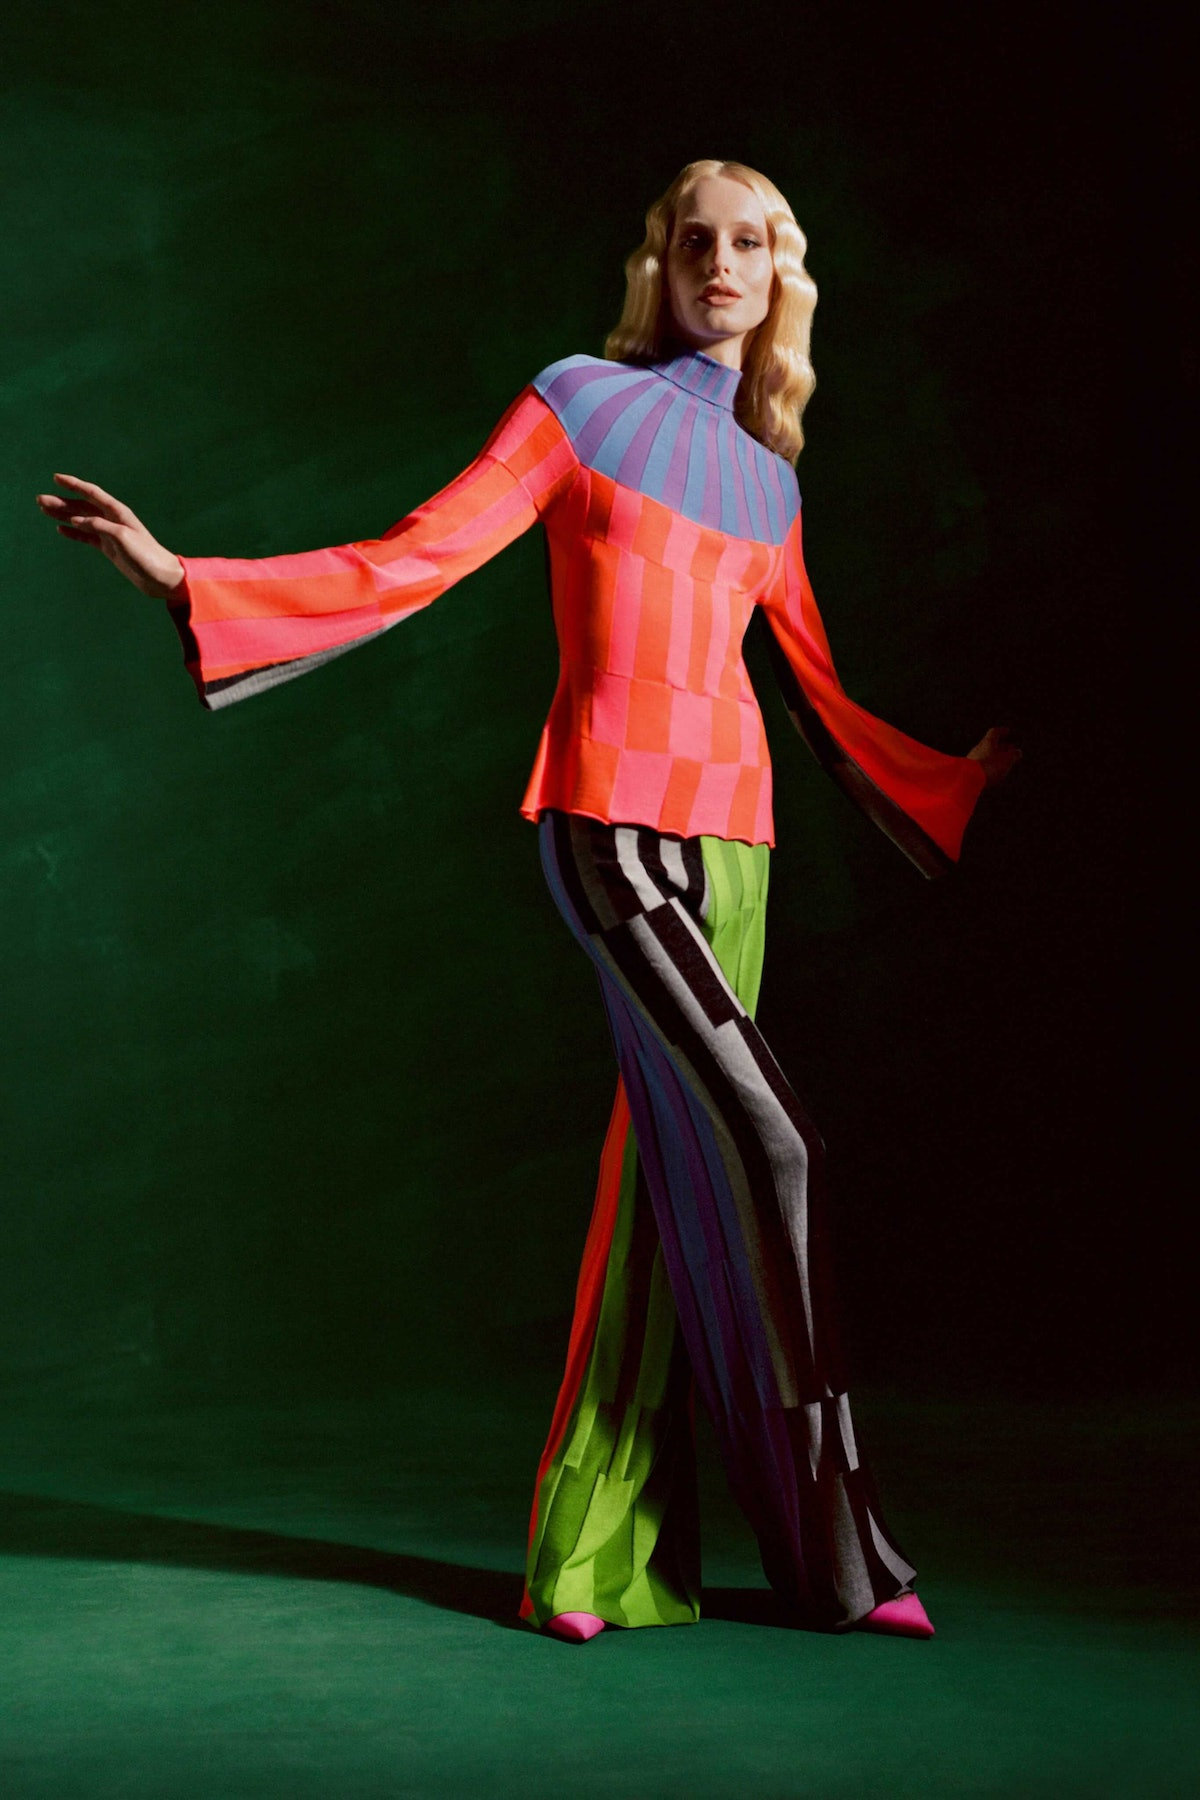 Model in bright knits